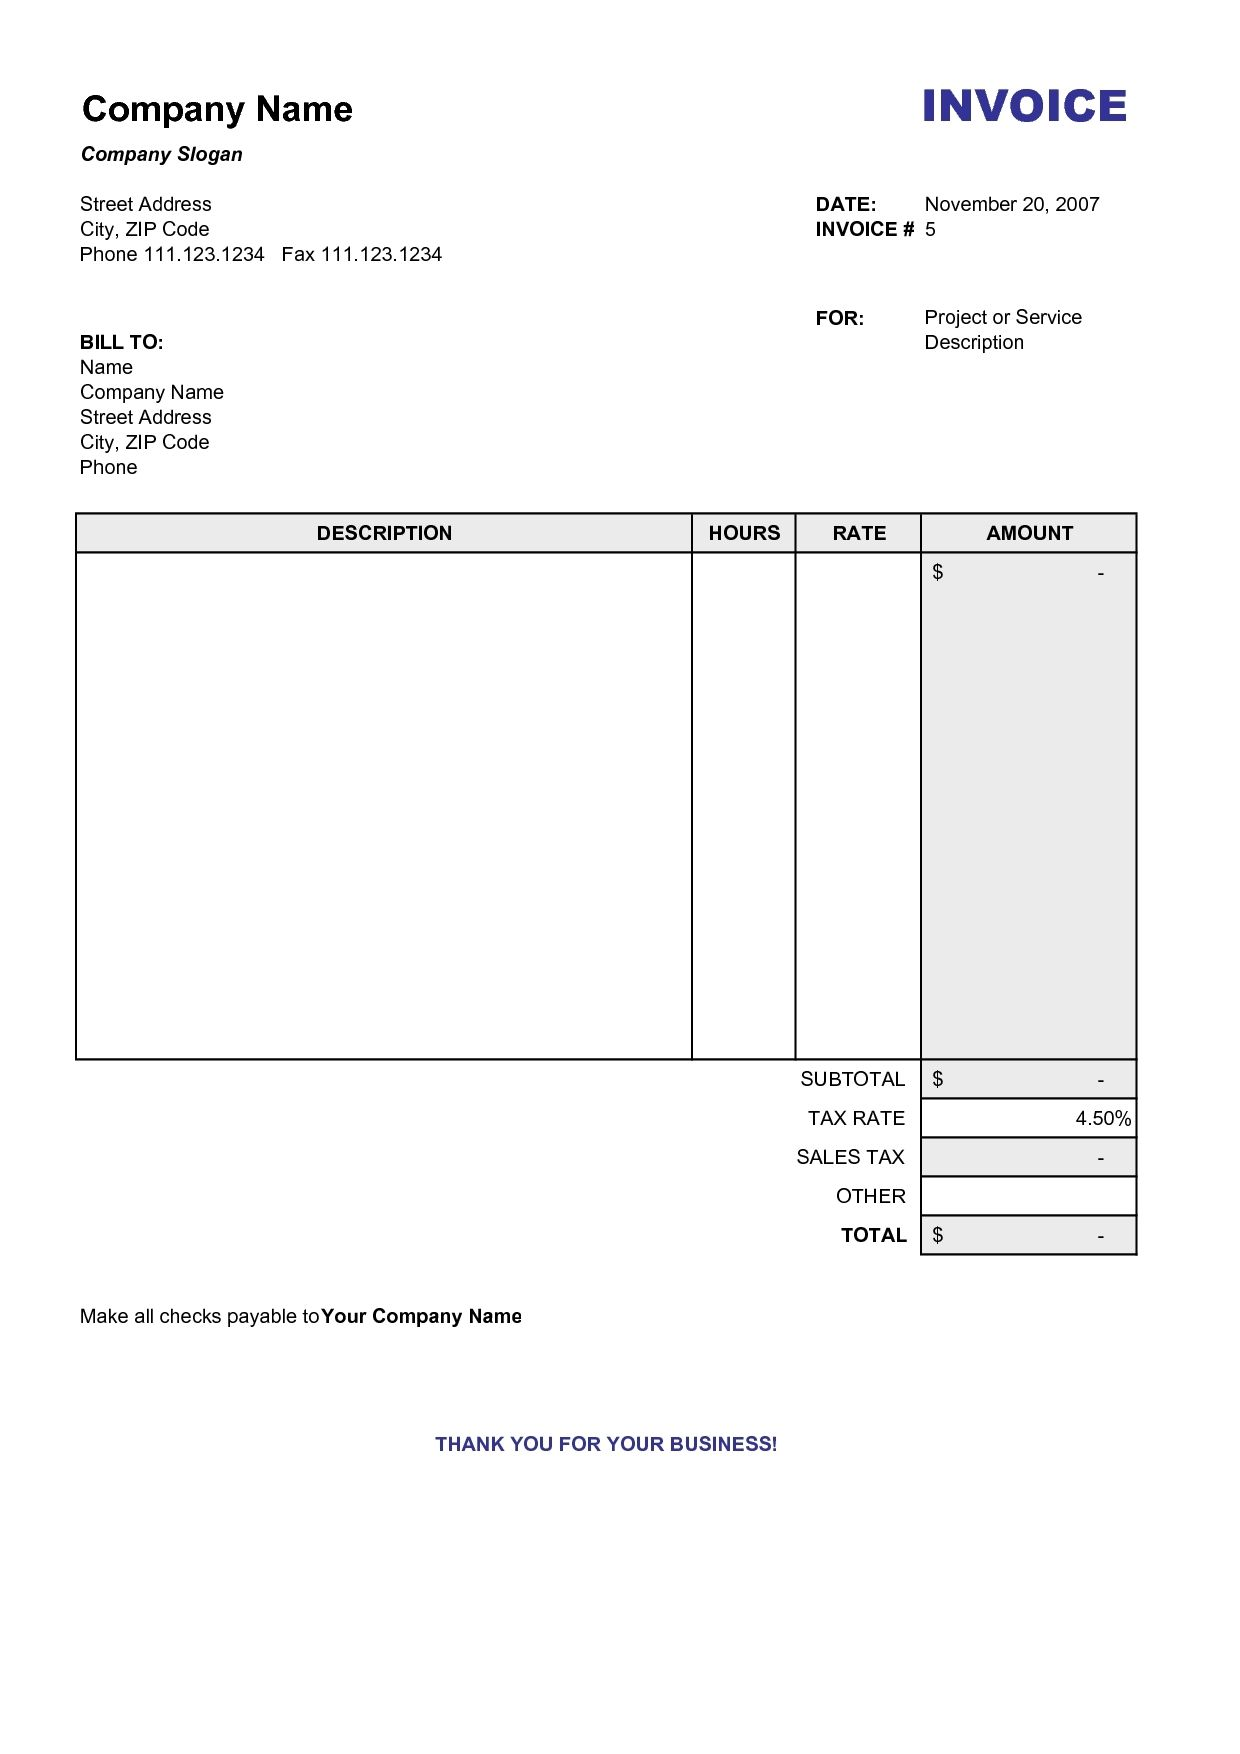 Delightful Copy Of A Blank Invoice Invoice Template Free 2016 Copy Of Blank Invoice And Copy Of Blank Invoice